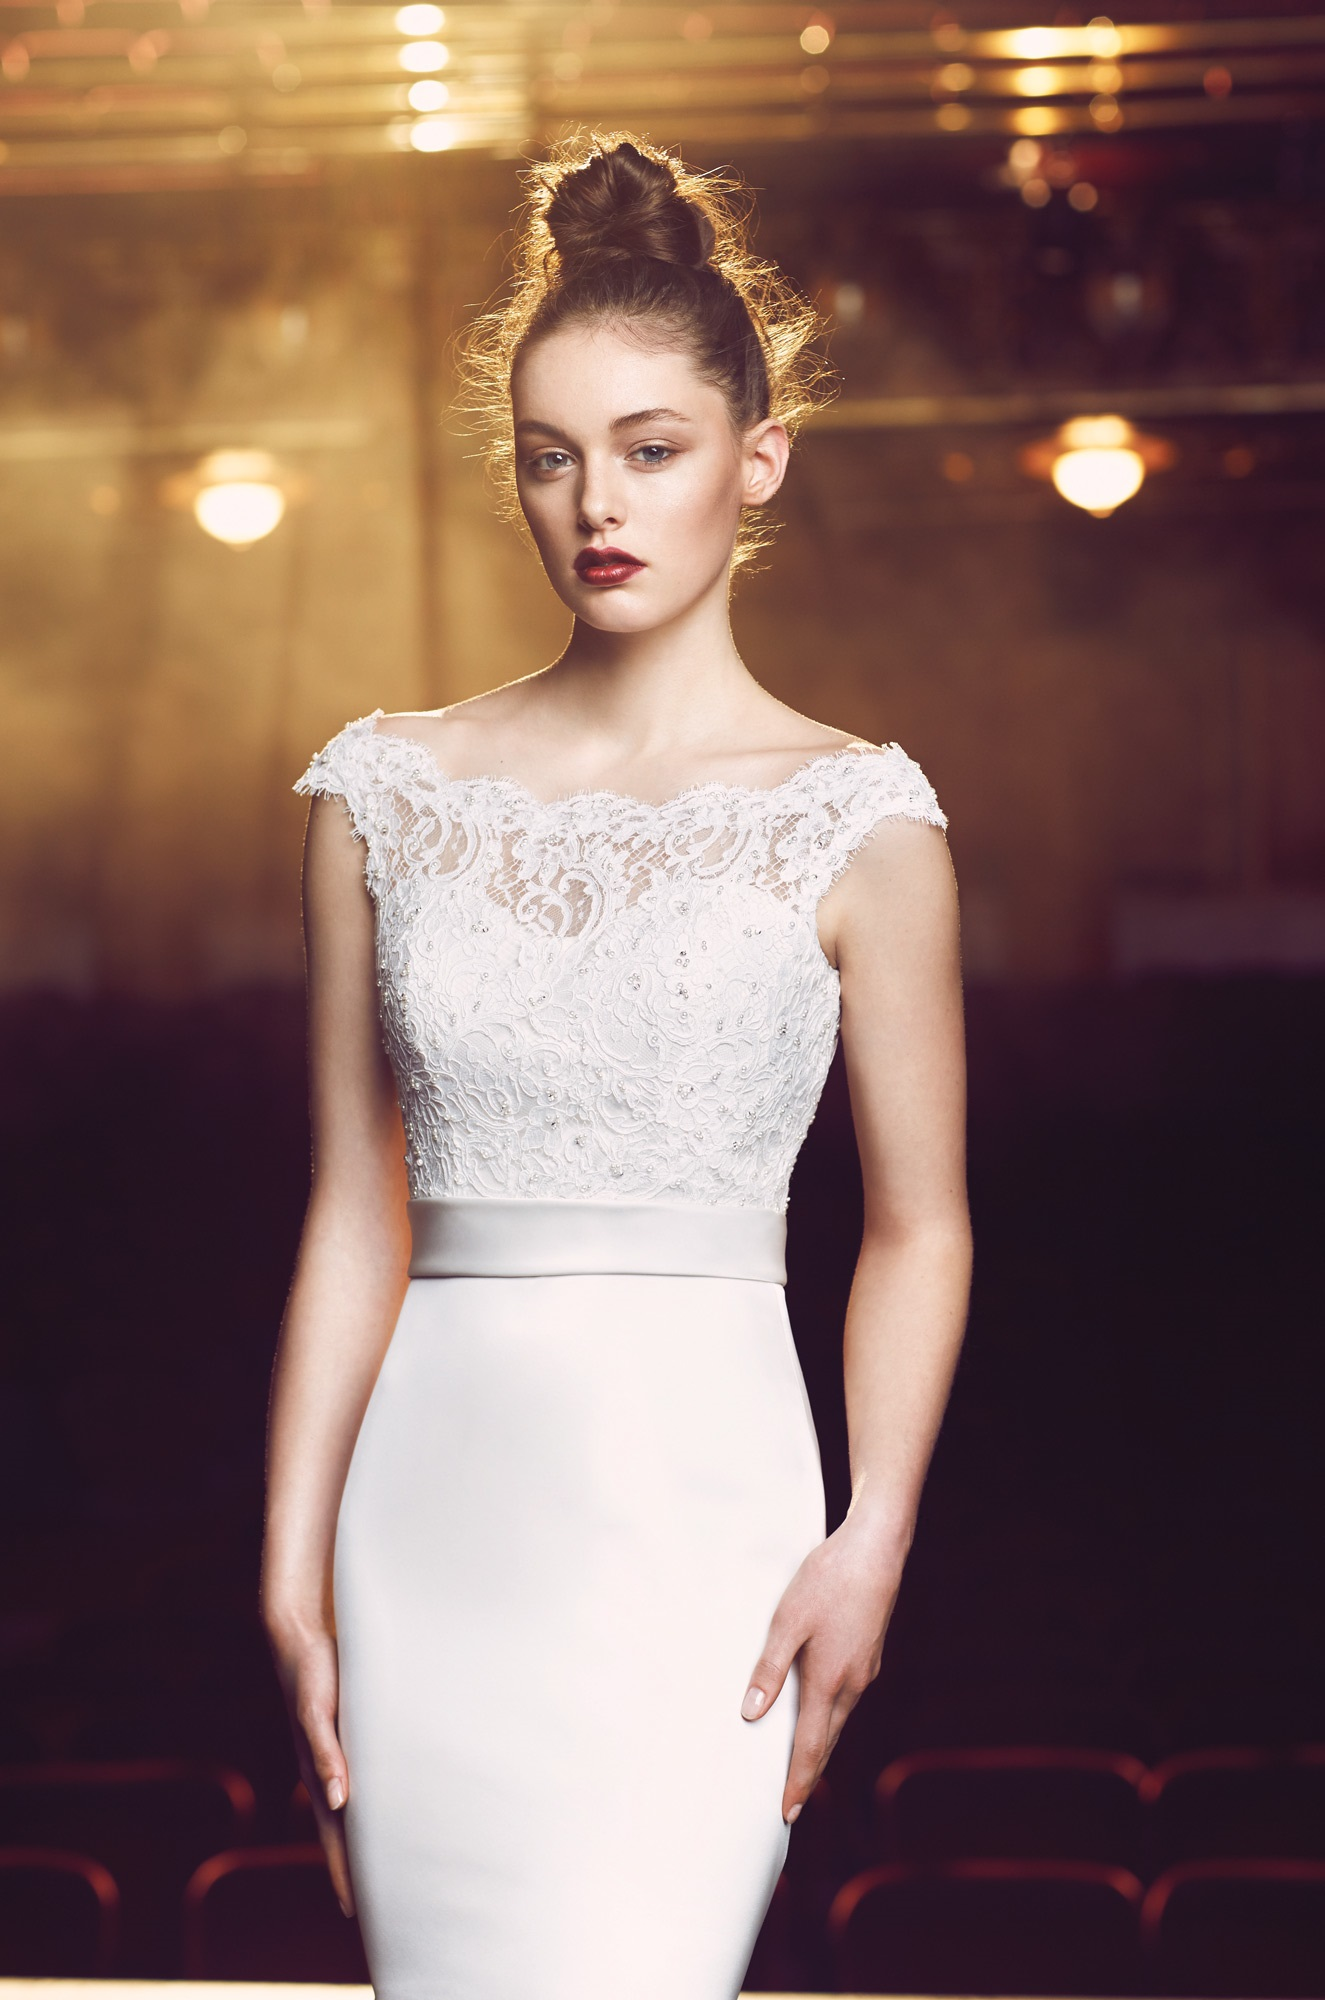 Beaded Lace Wedding Dress - Style #4716 | Paloma Blanca